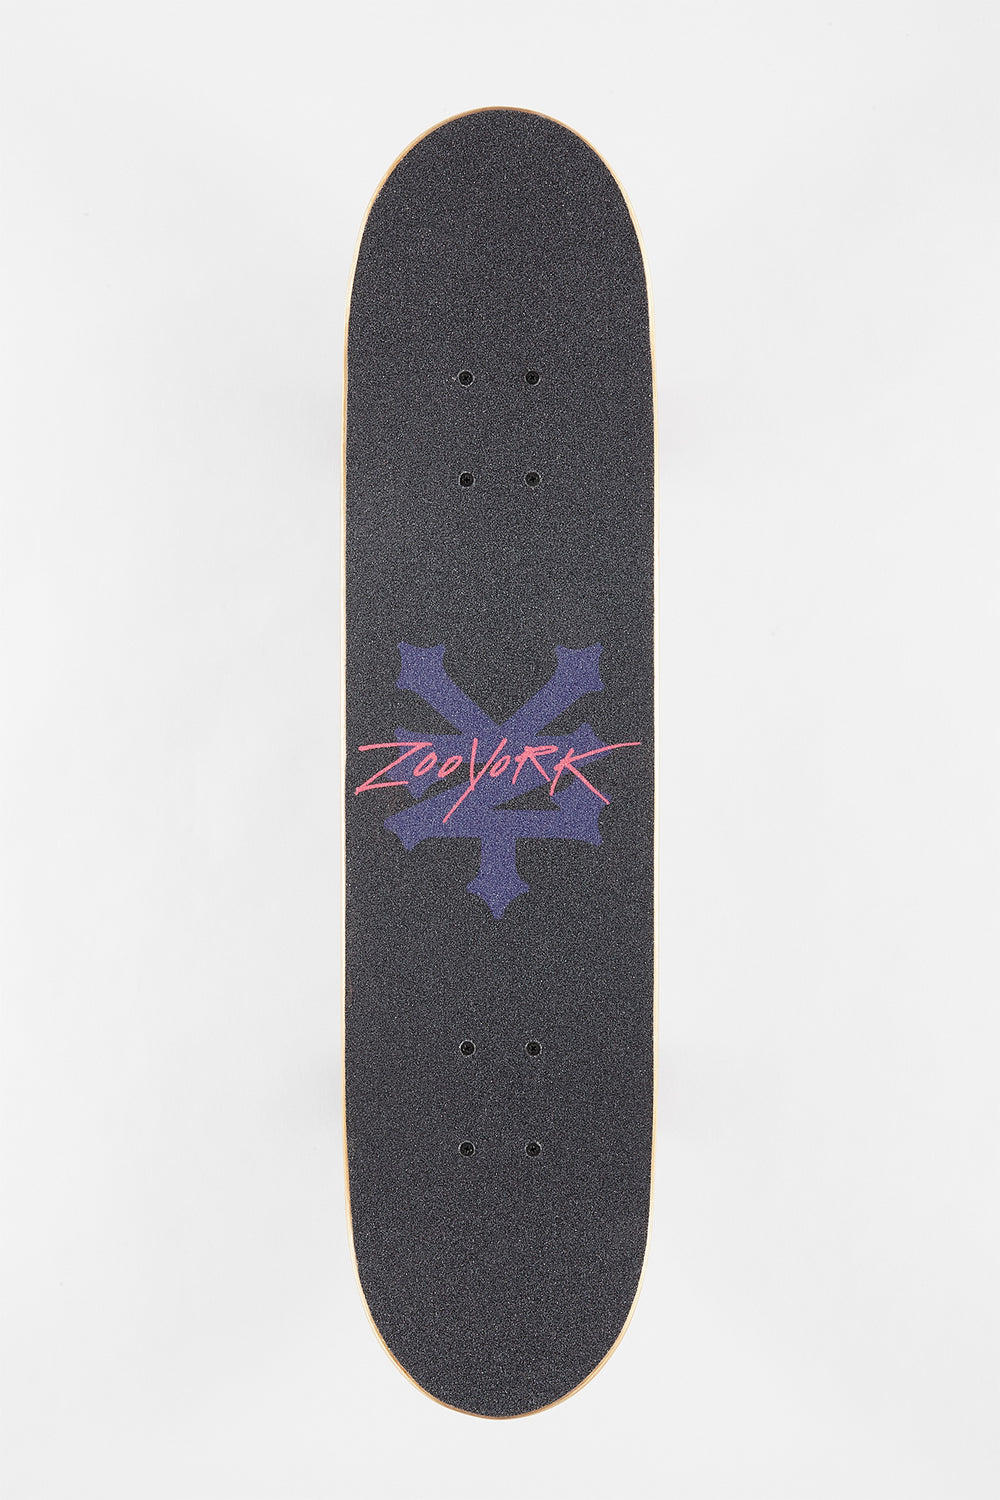 Skateboard Squelette NYC Zoo York 7.75